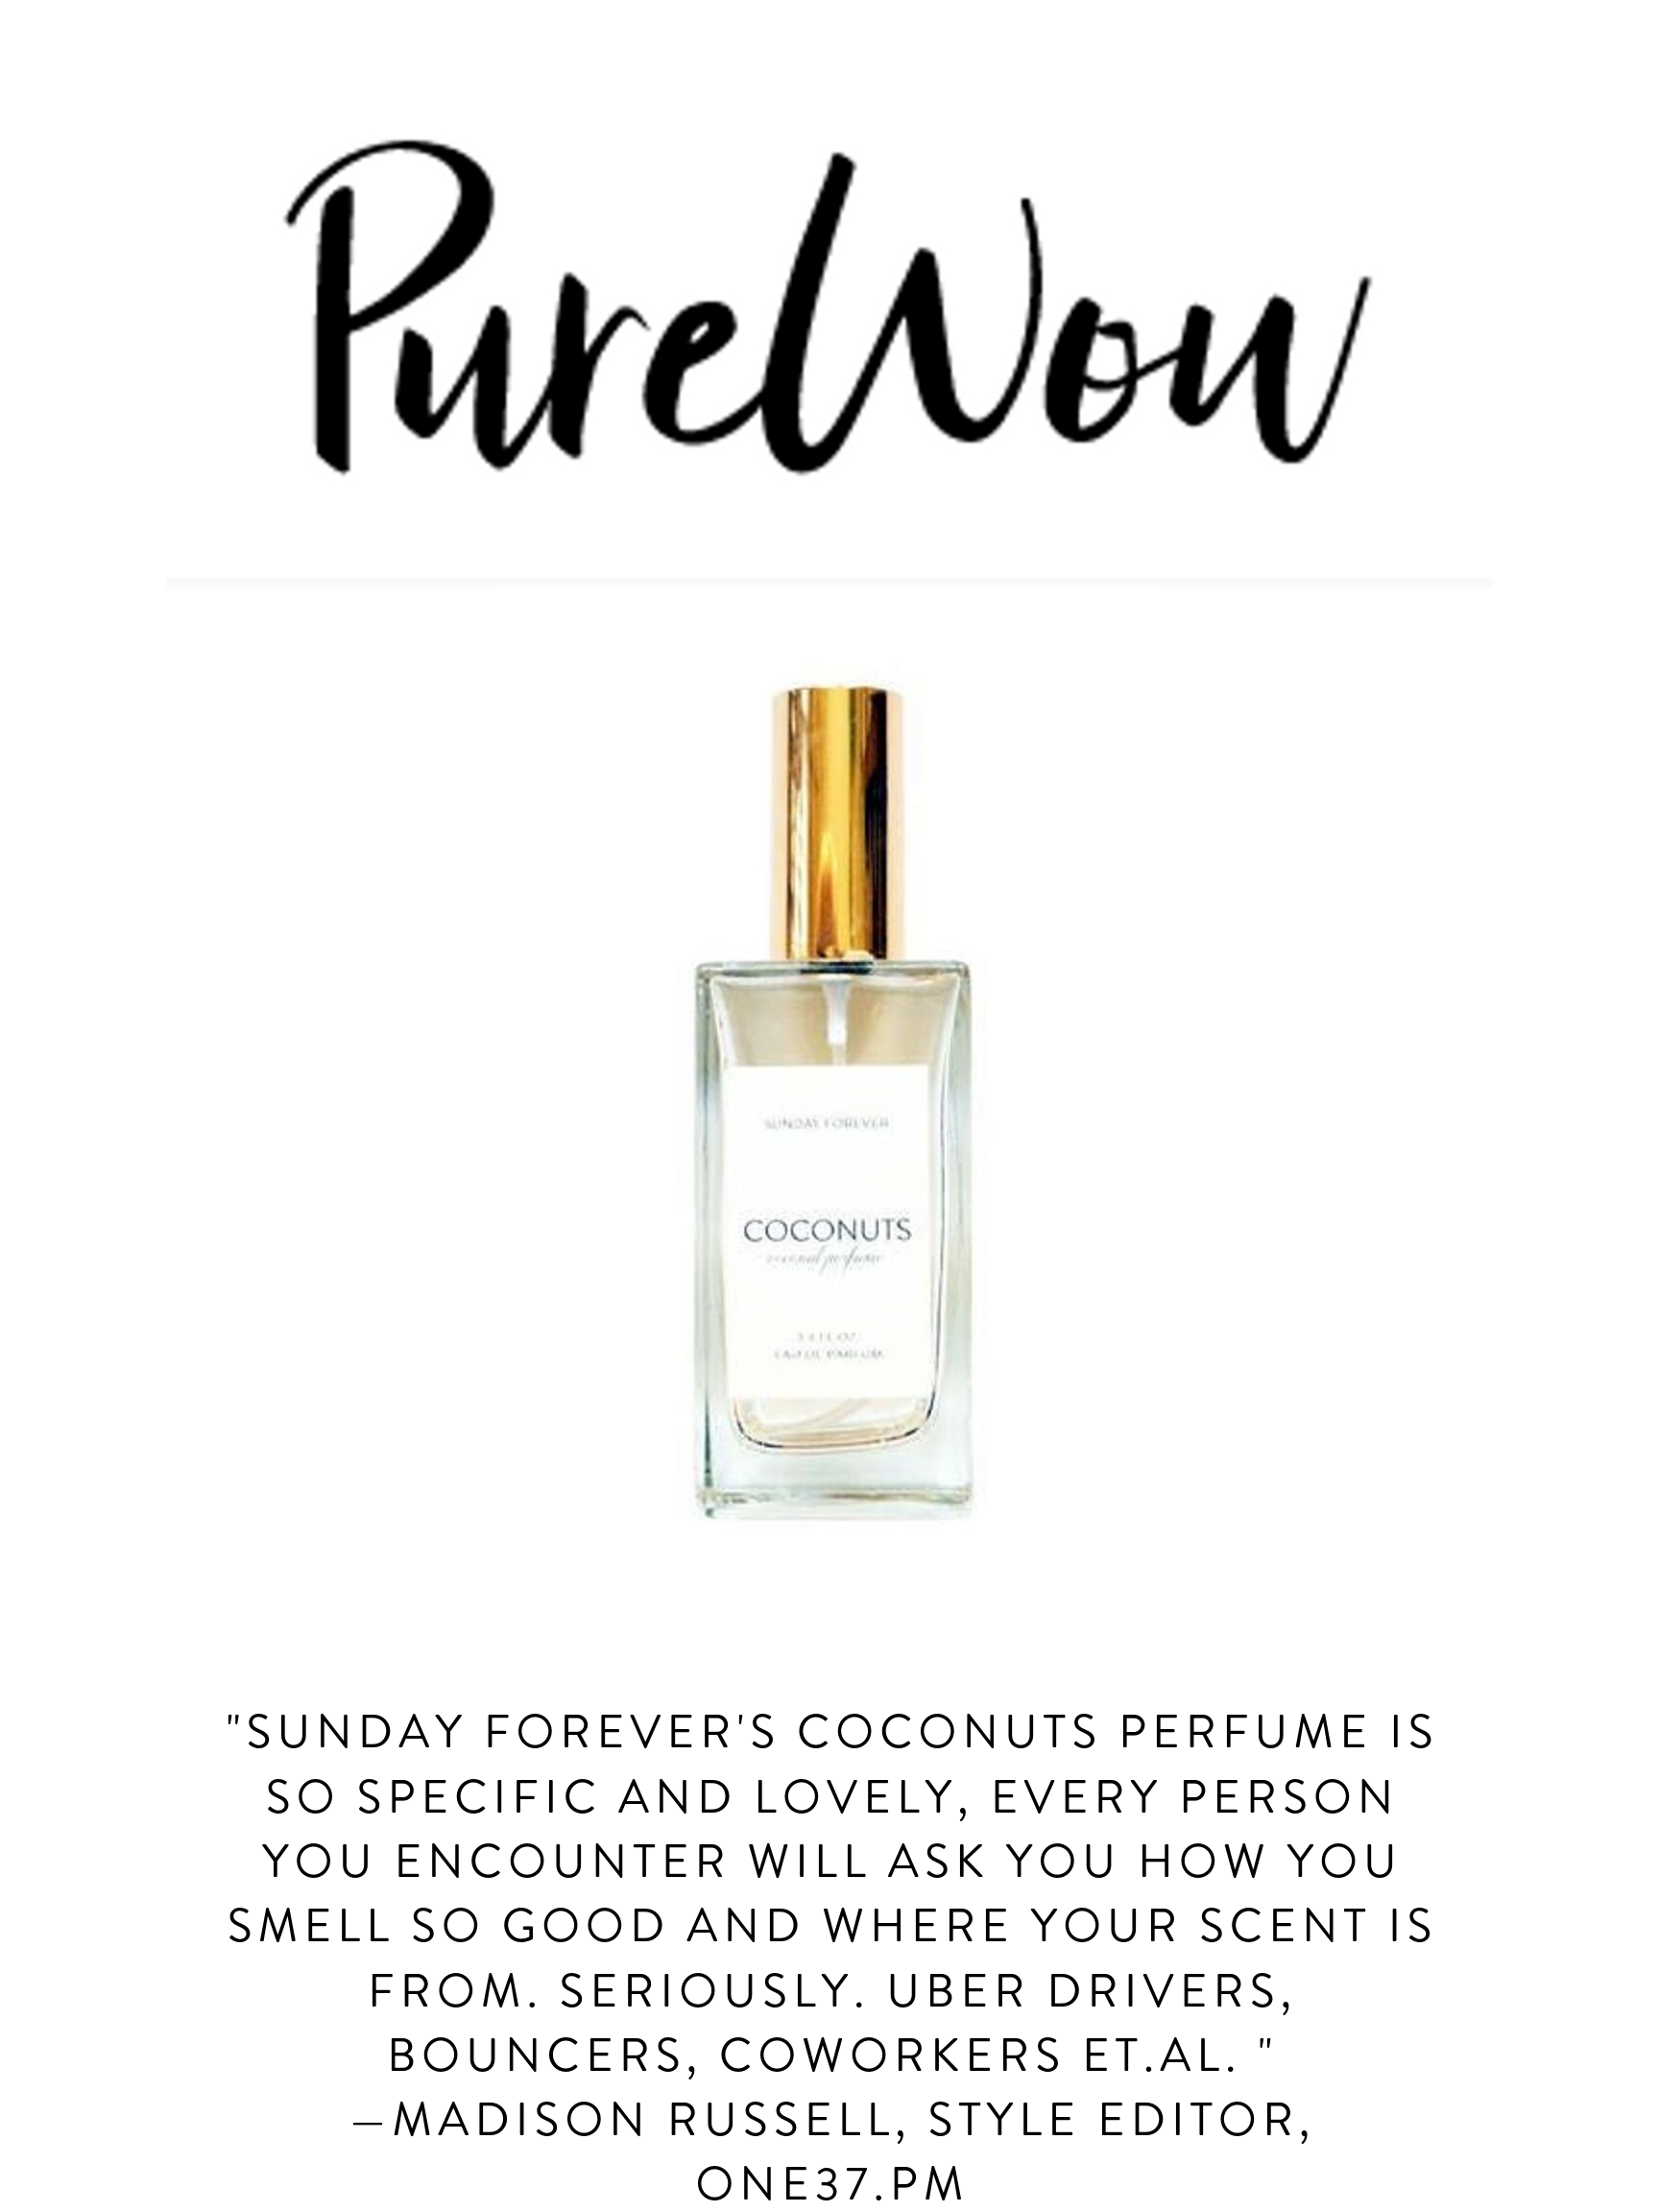 Sunday Forever Pure Wow Coconuts Perfume Press